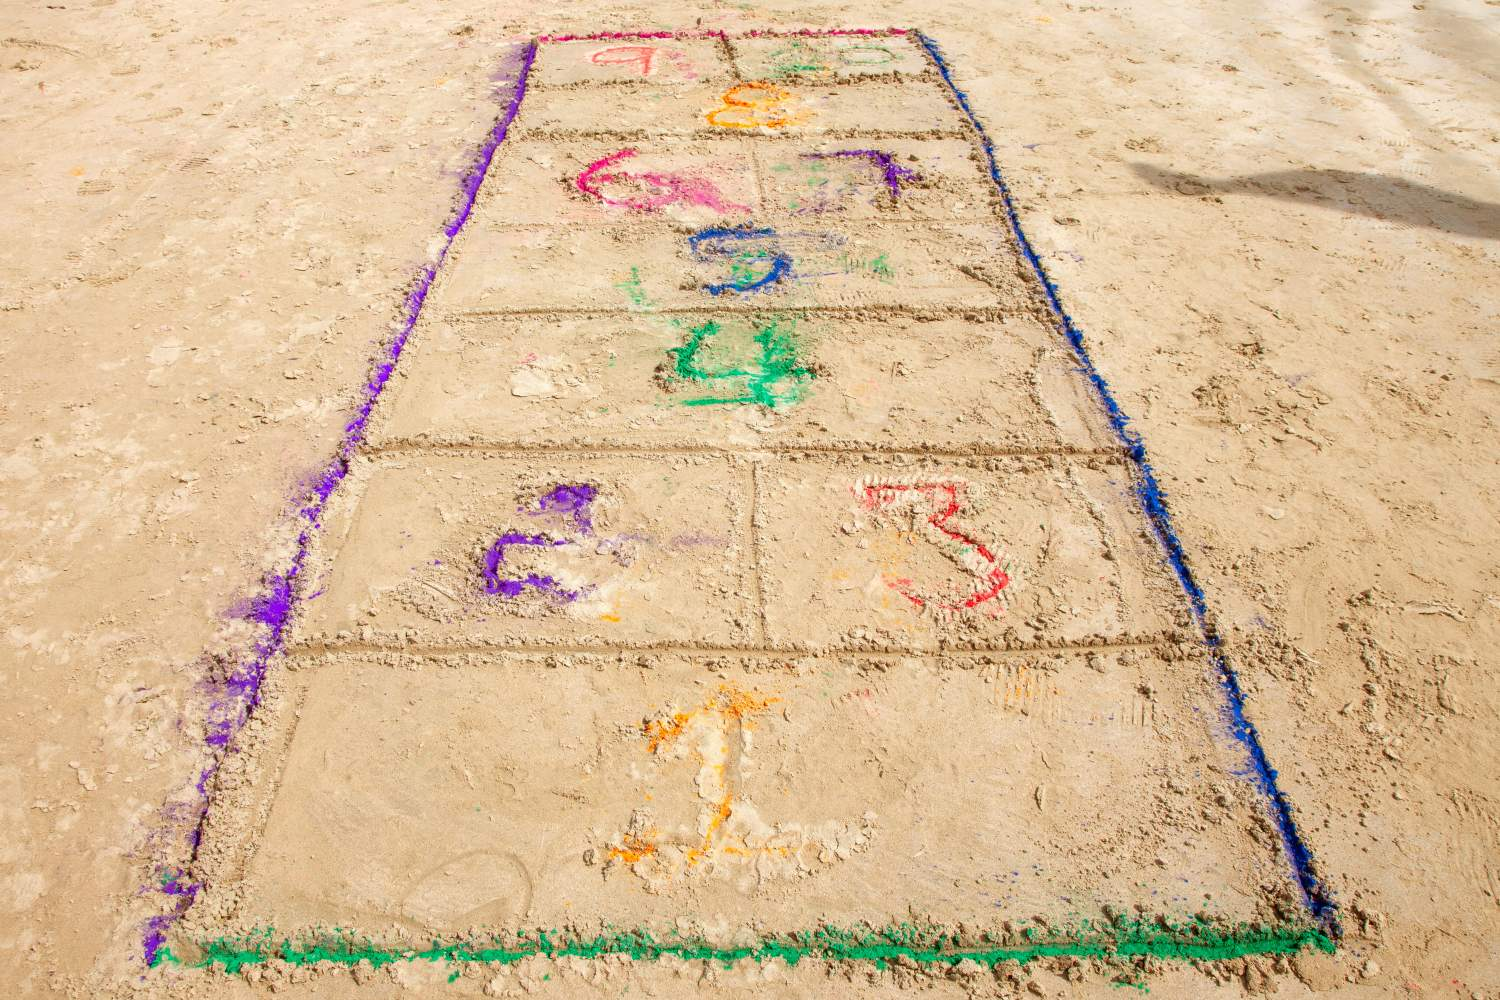 Hopscotch on the beach